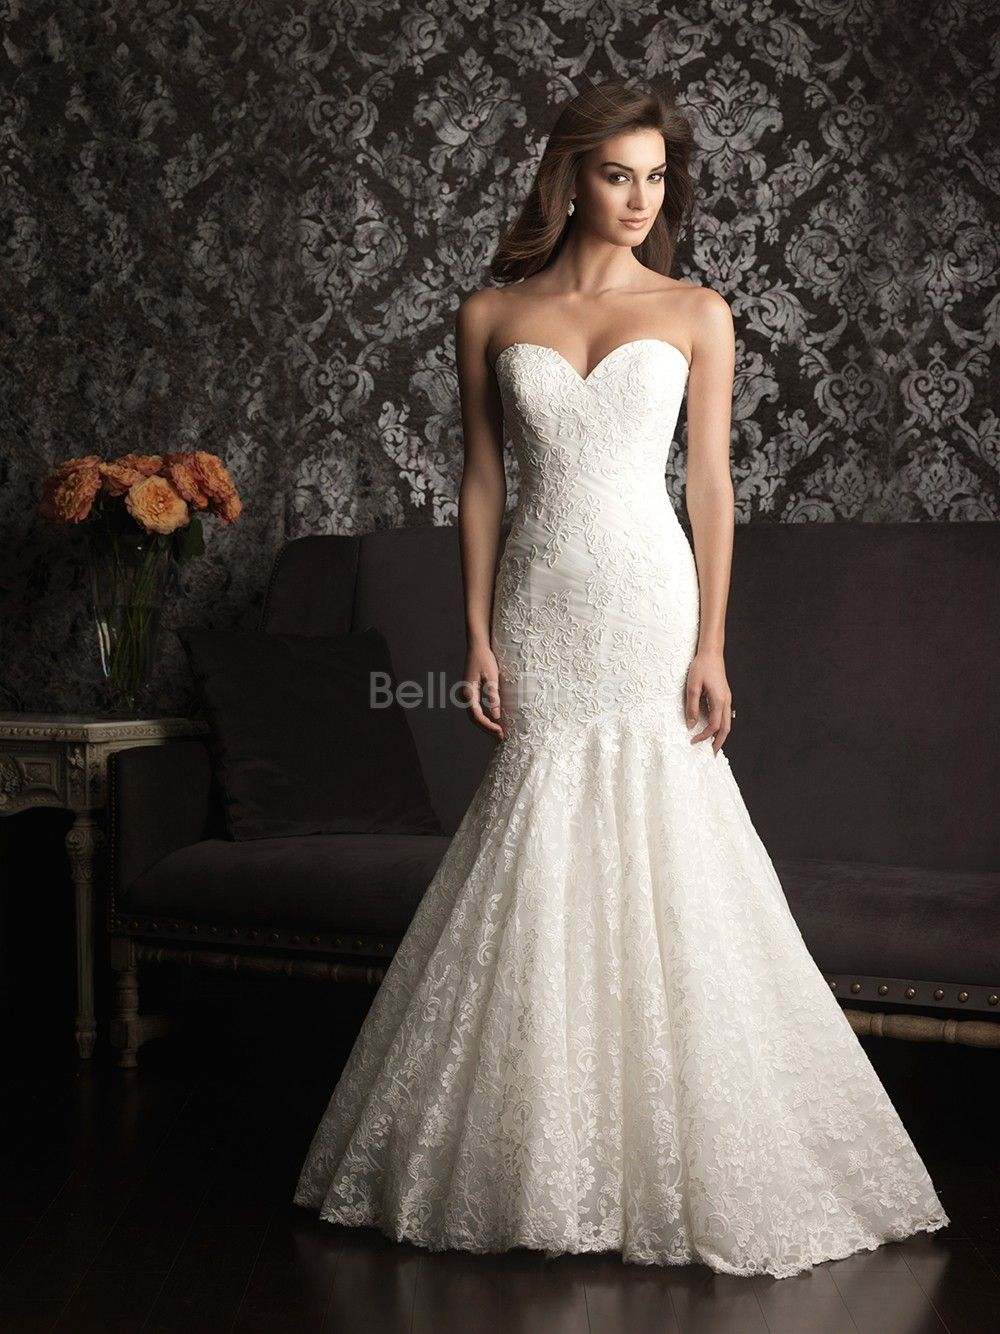 sweetheart wedding dresses Luxurious Mermaid Lace Court Train Sweetheart Wedding Dresses With Buttons